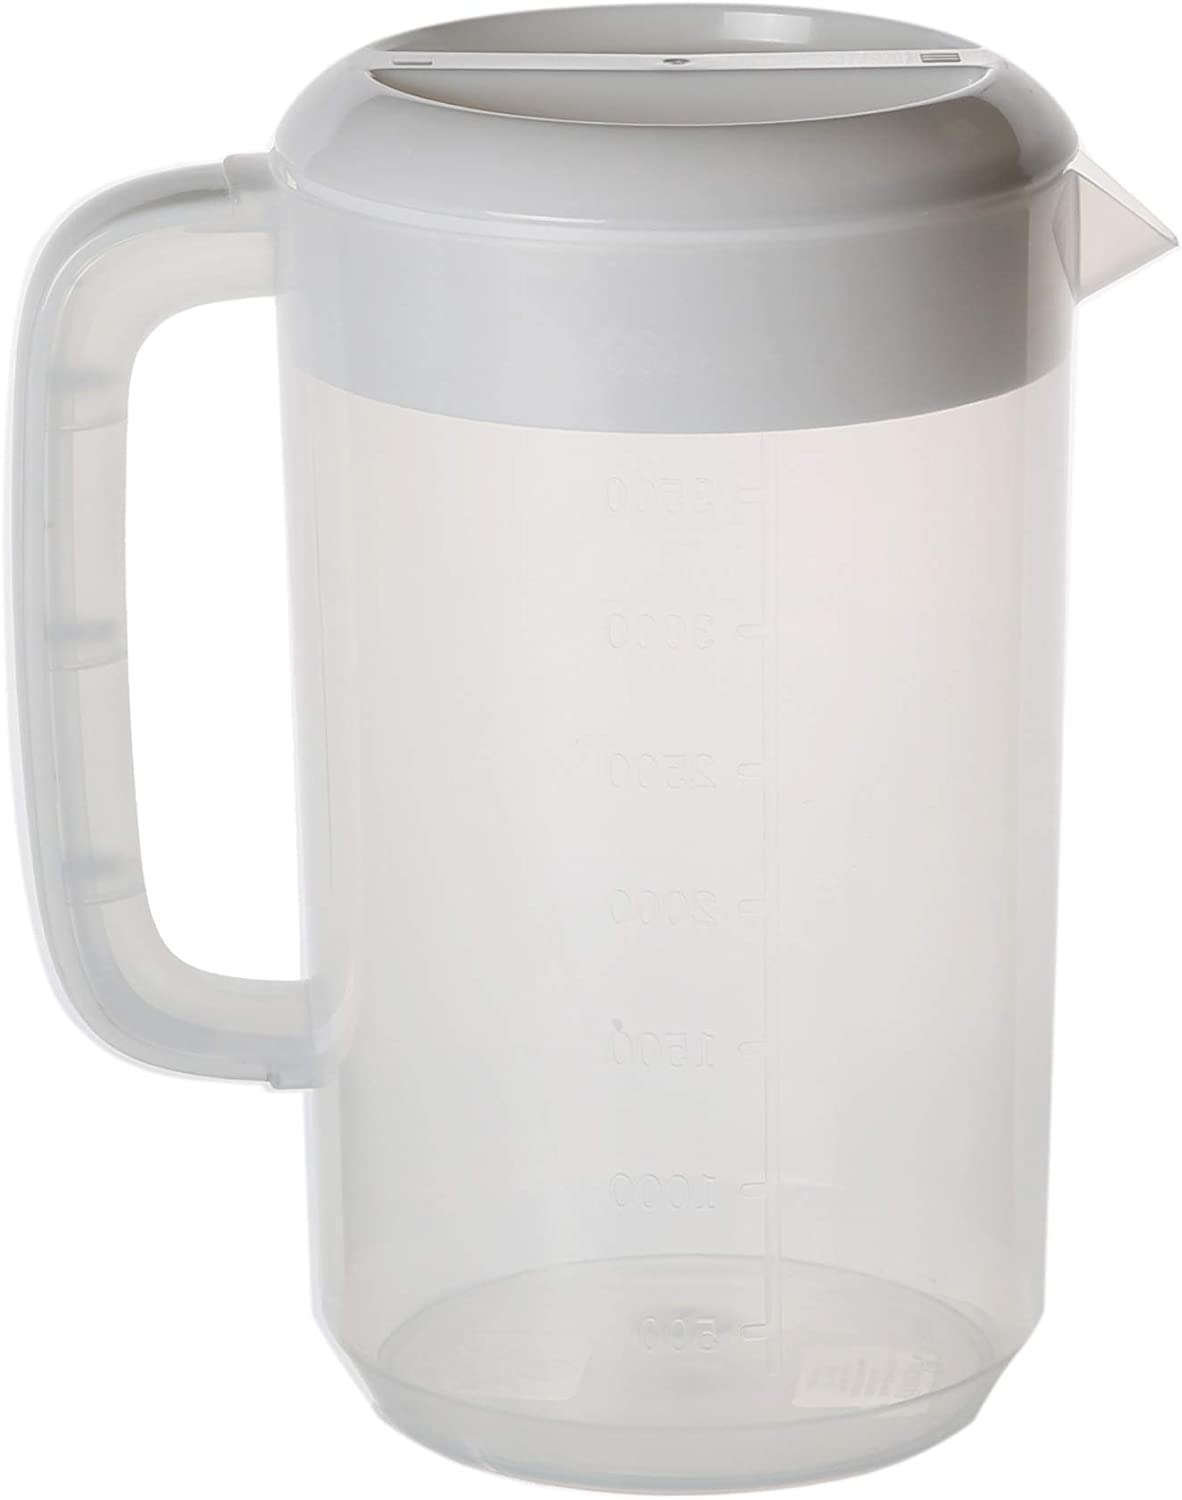 Gallon Plastic Pitcher with Lid/cover BPA-FREE Eco-Friendly Carafes Mix Drinks Water Jug for Hot/Cold Juice Beverage Ice Tea (135oz, White)